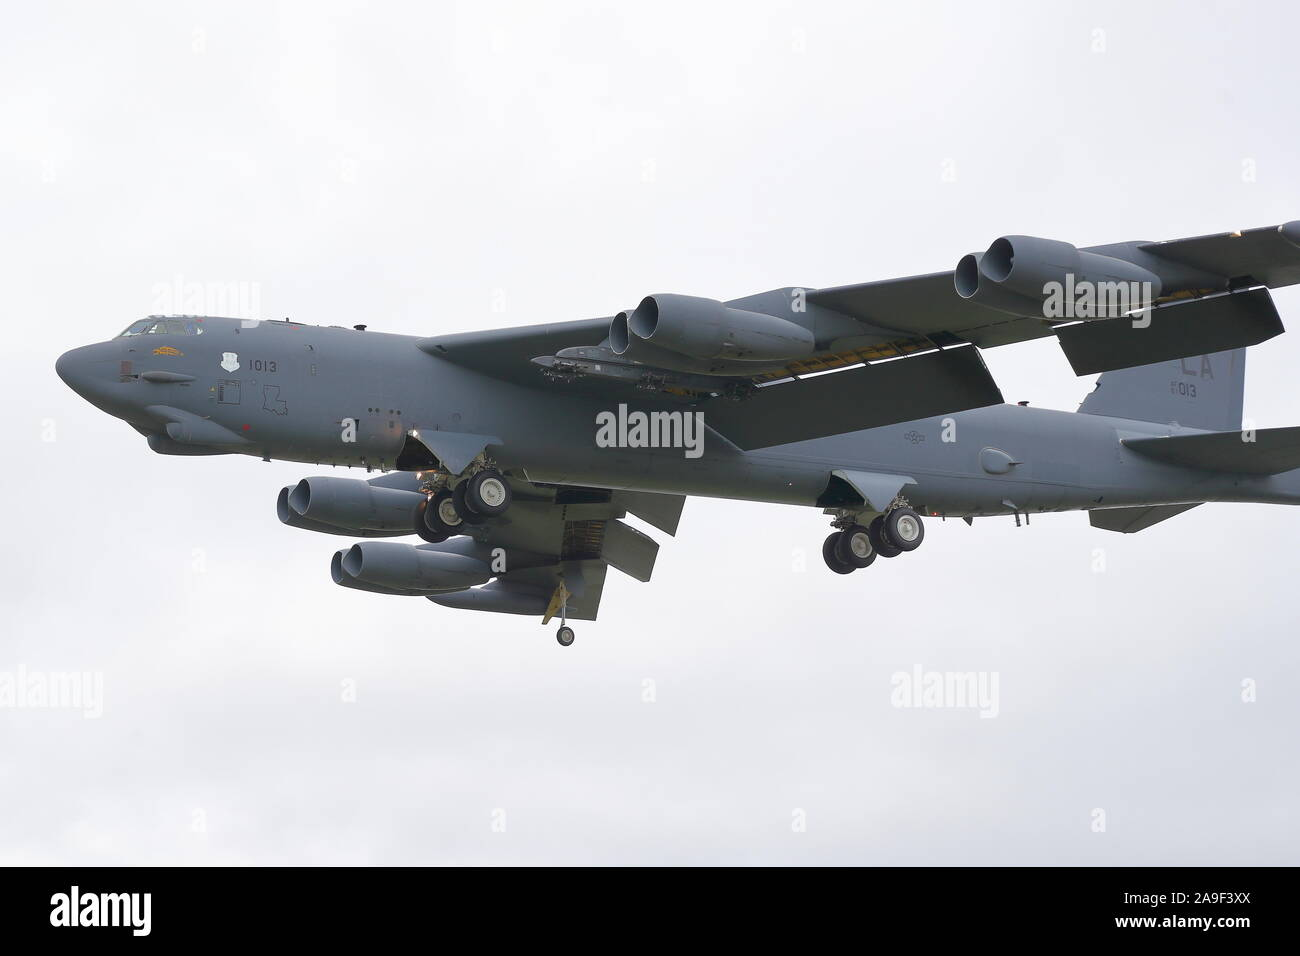 Eight-engine Boeing B-52 Stratofortress strategic bomber returning from a training mission at RAF Fairford, UK Stock Photo